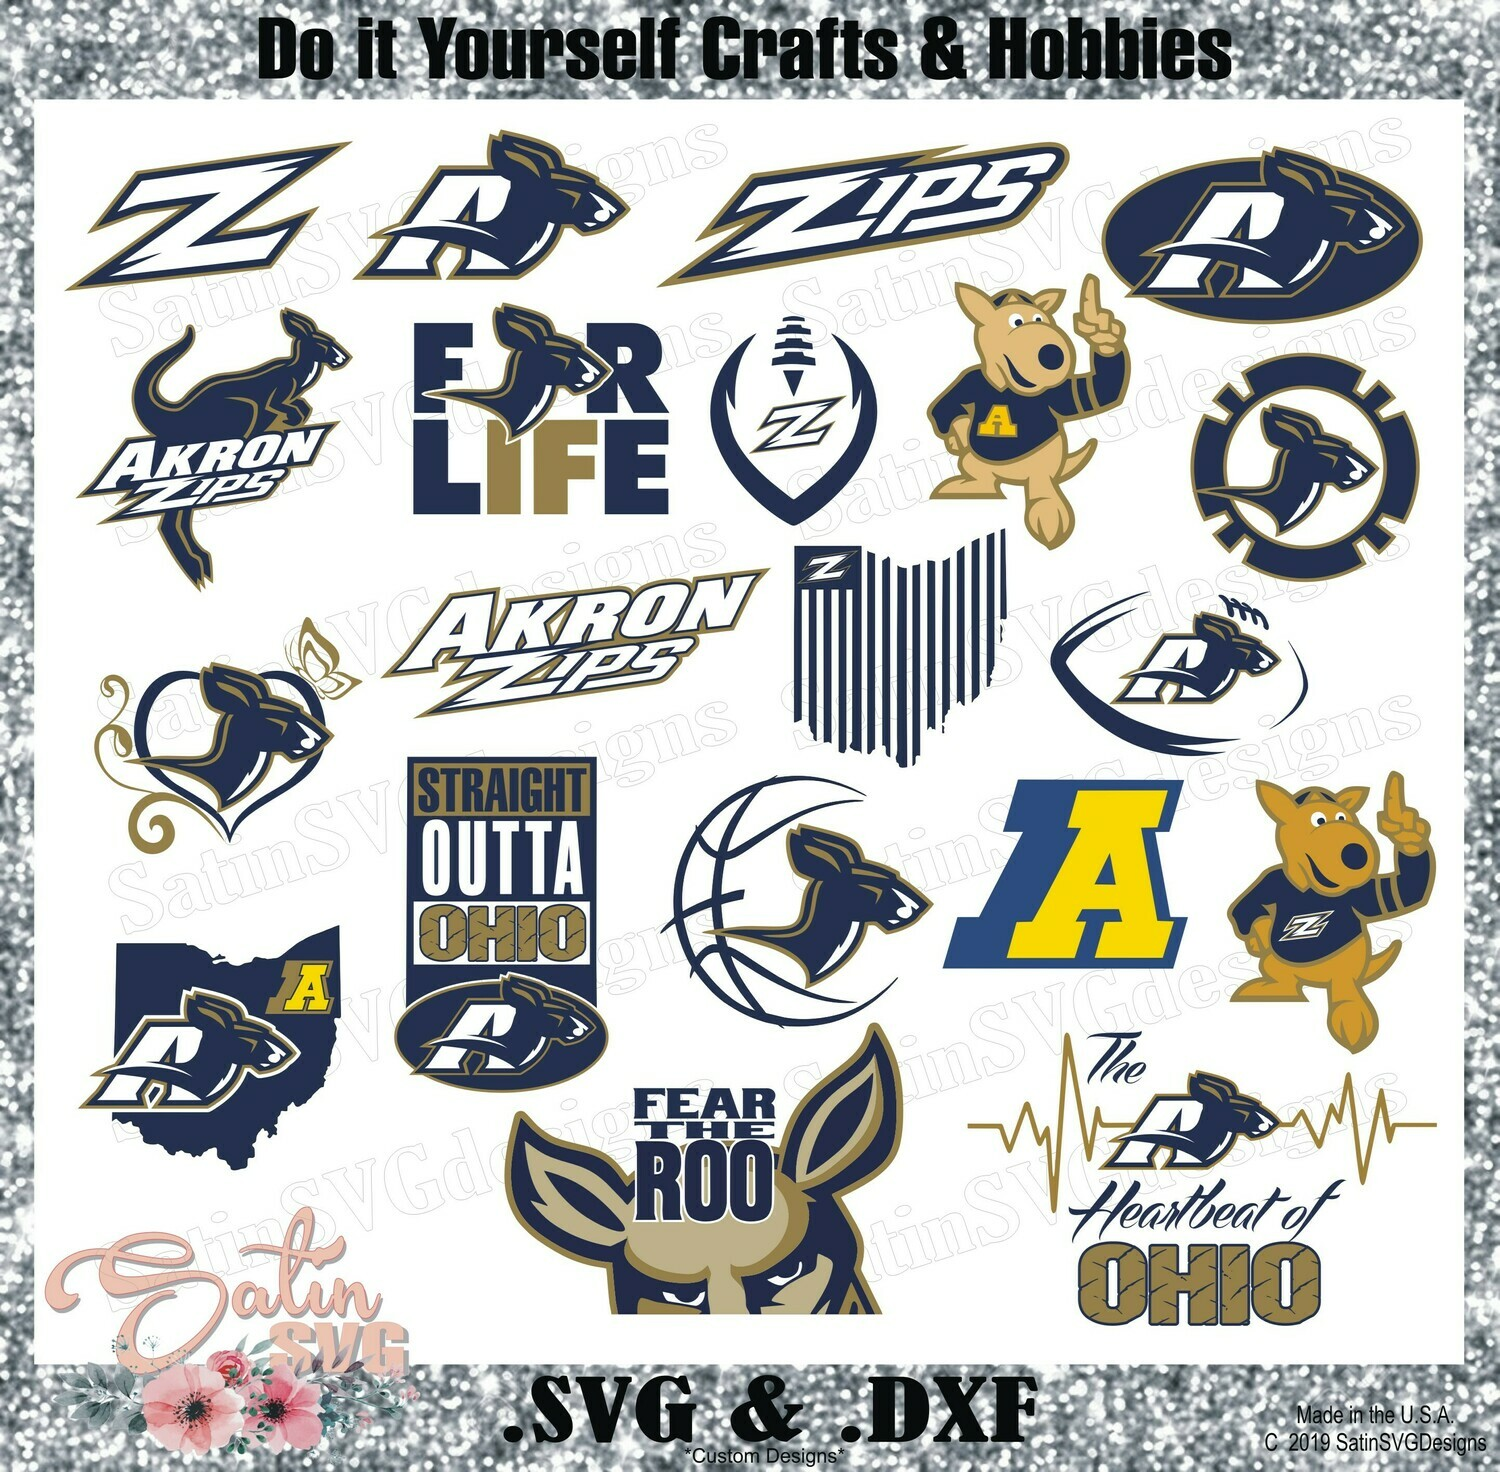 Akron Zips, Akron University NEW Custom Designs. SVG Files, Cricut, Silhouette Studio, Digital Cut Files, Infusible Ink